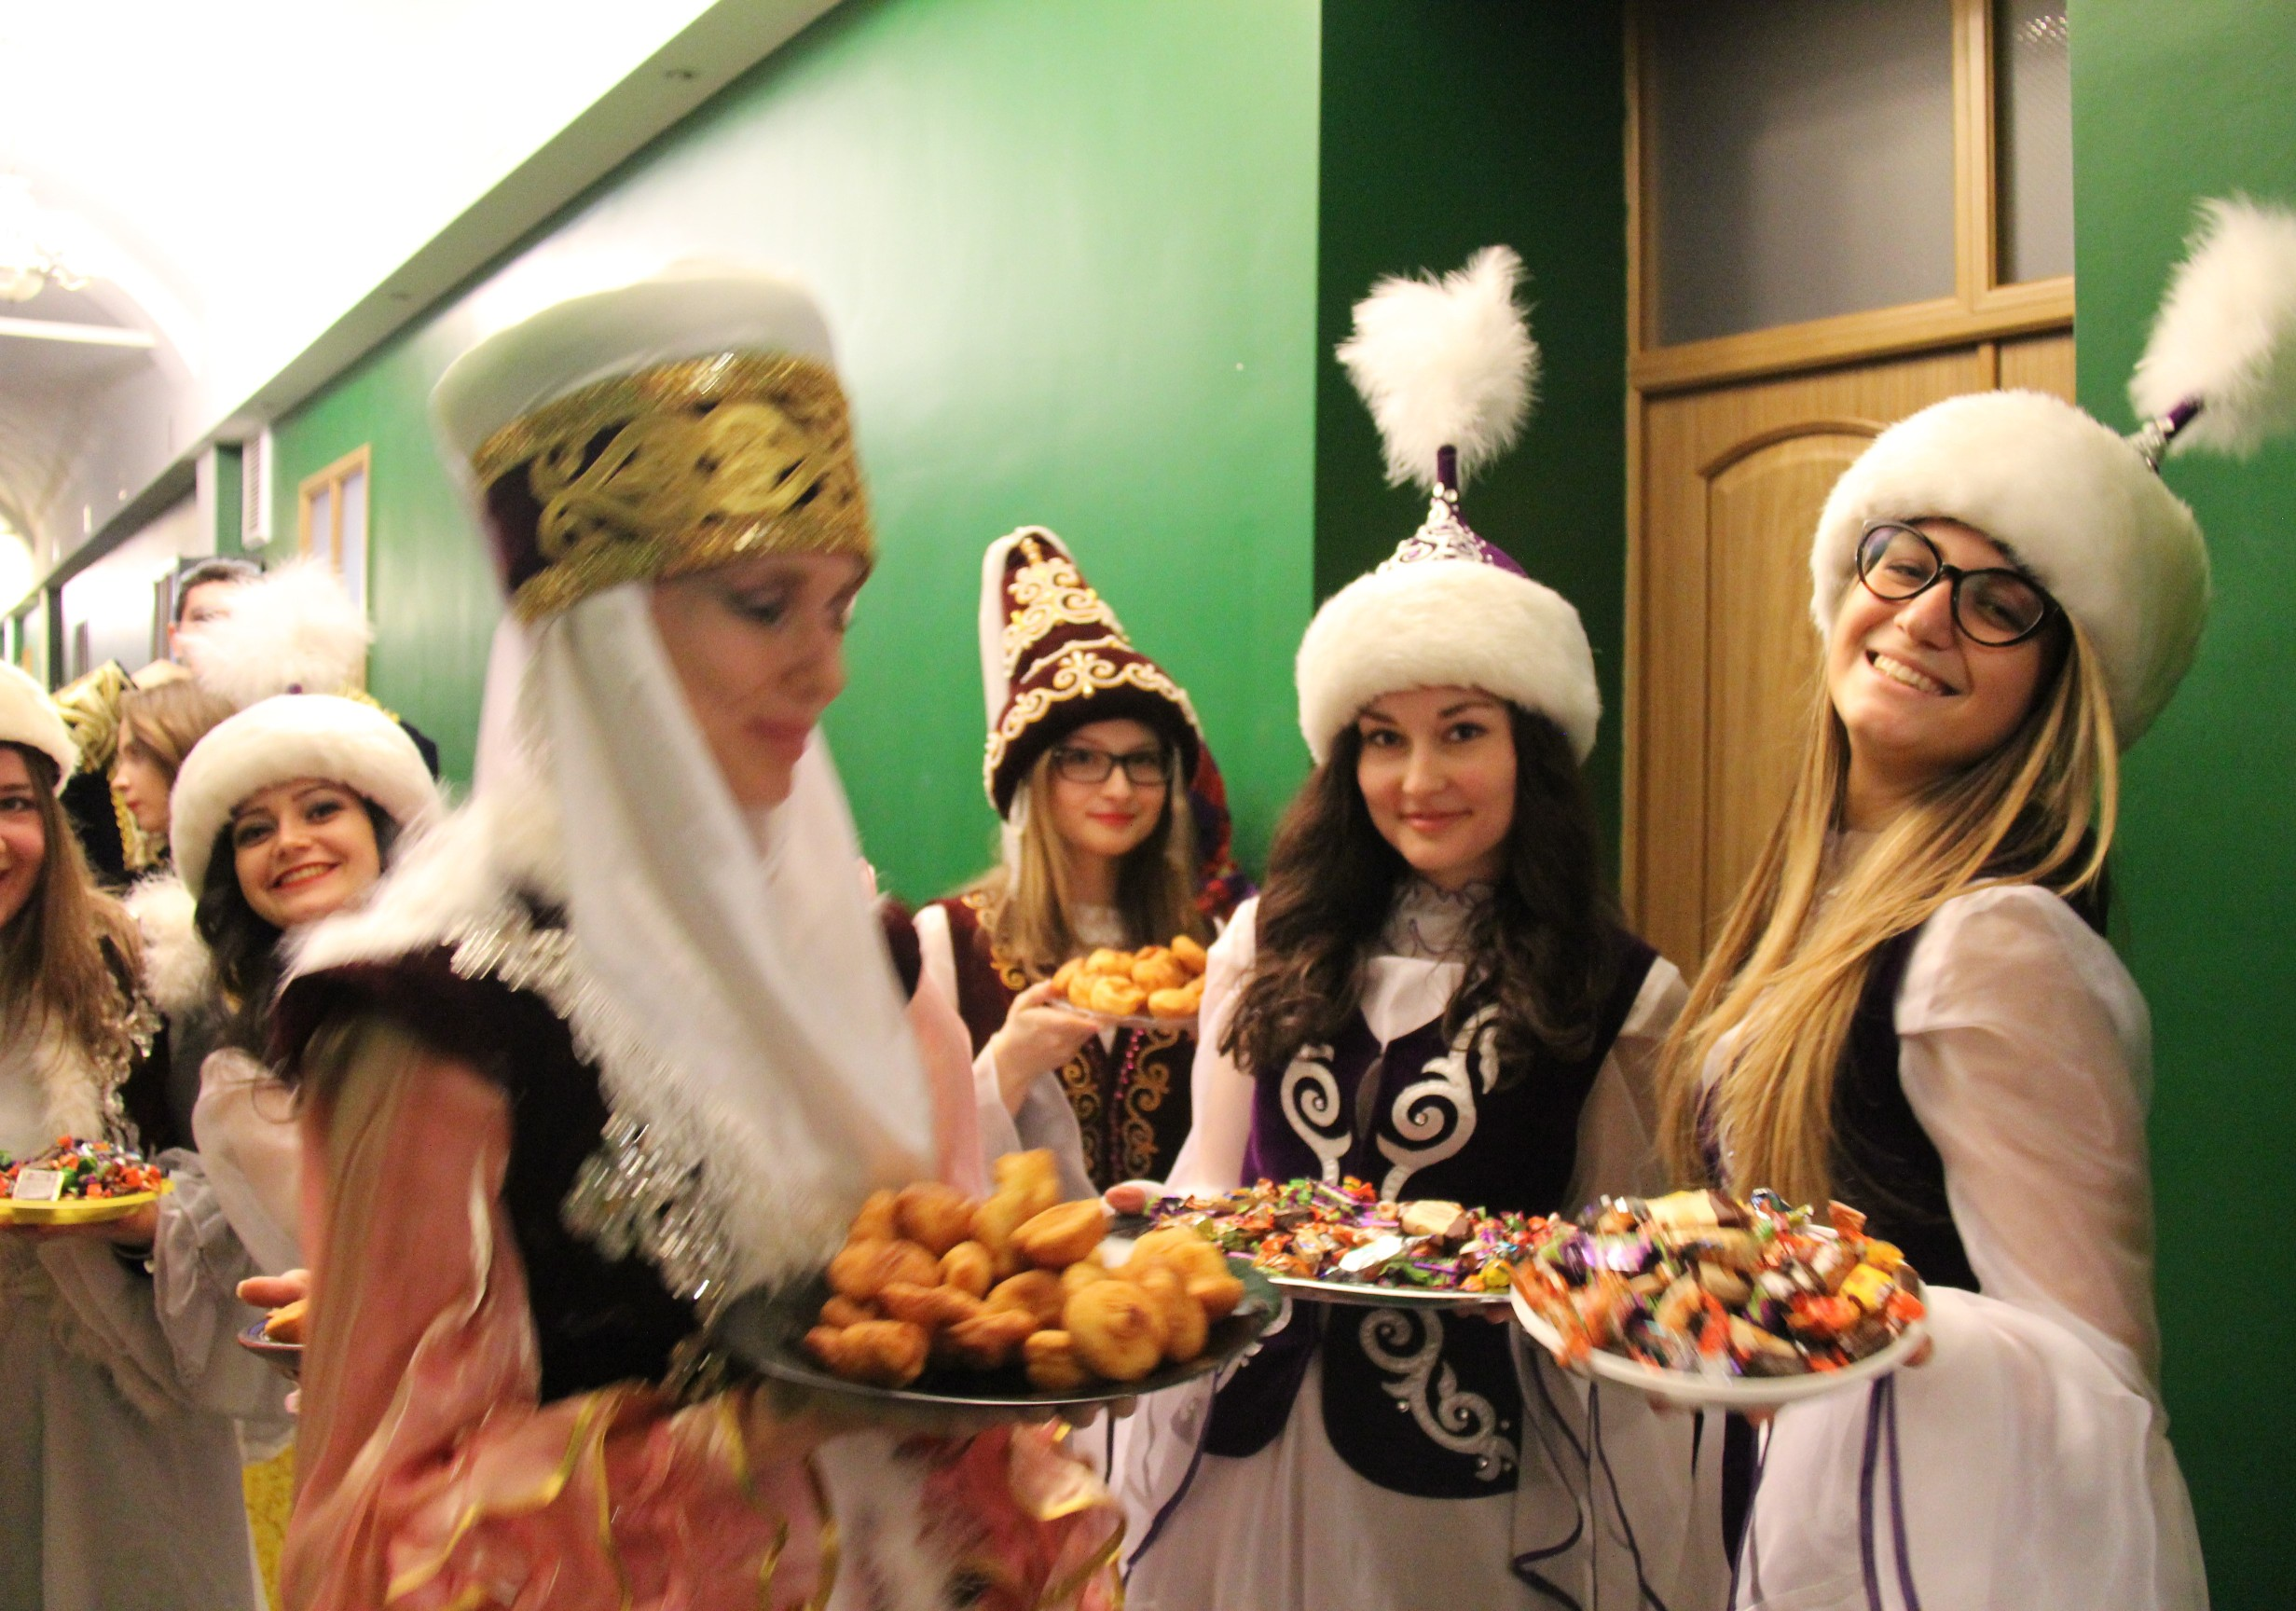 Kazakh Diaspora Share Joy Of Celebrating Nauryz With